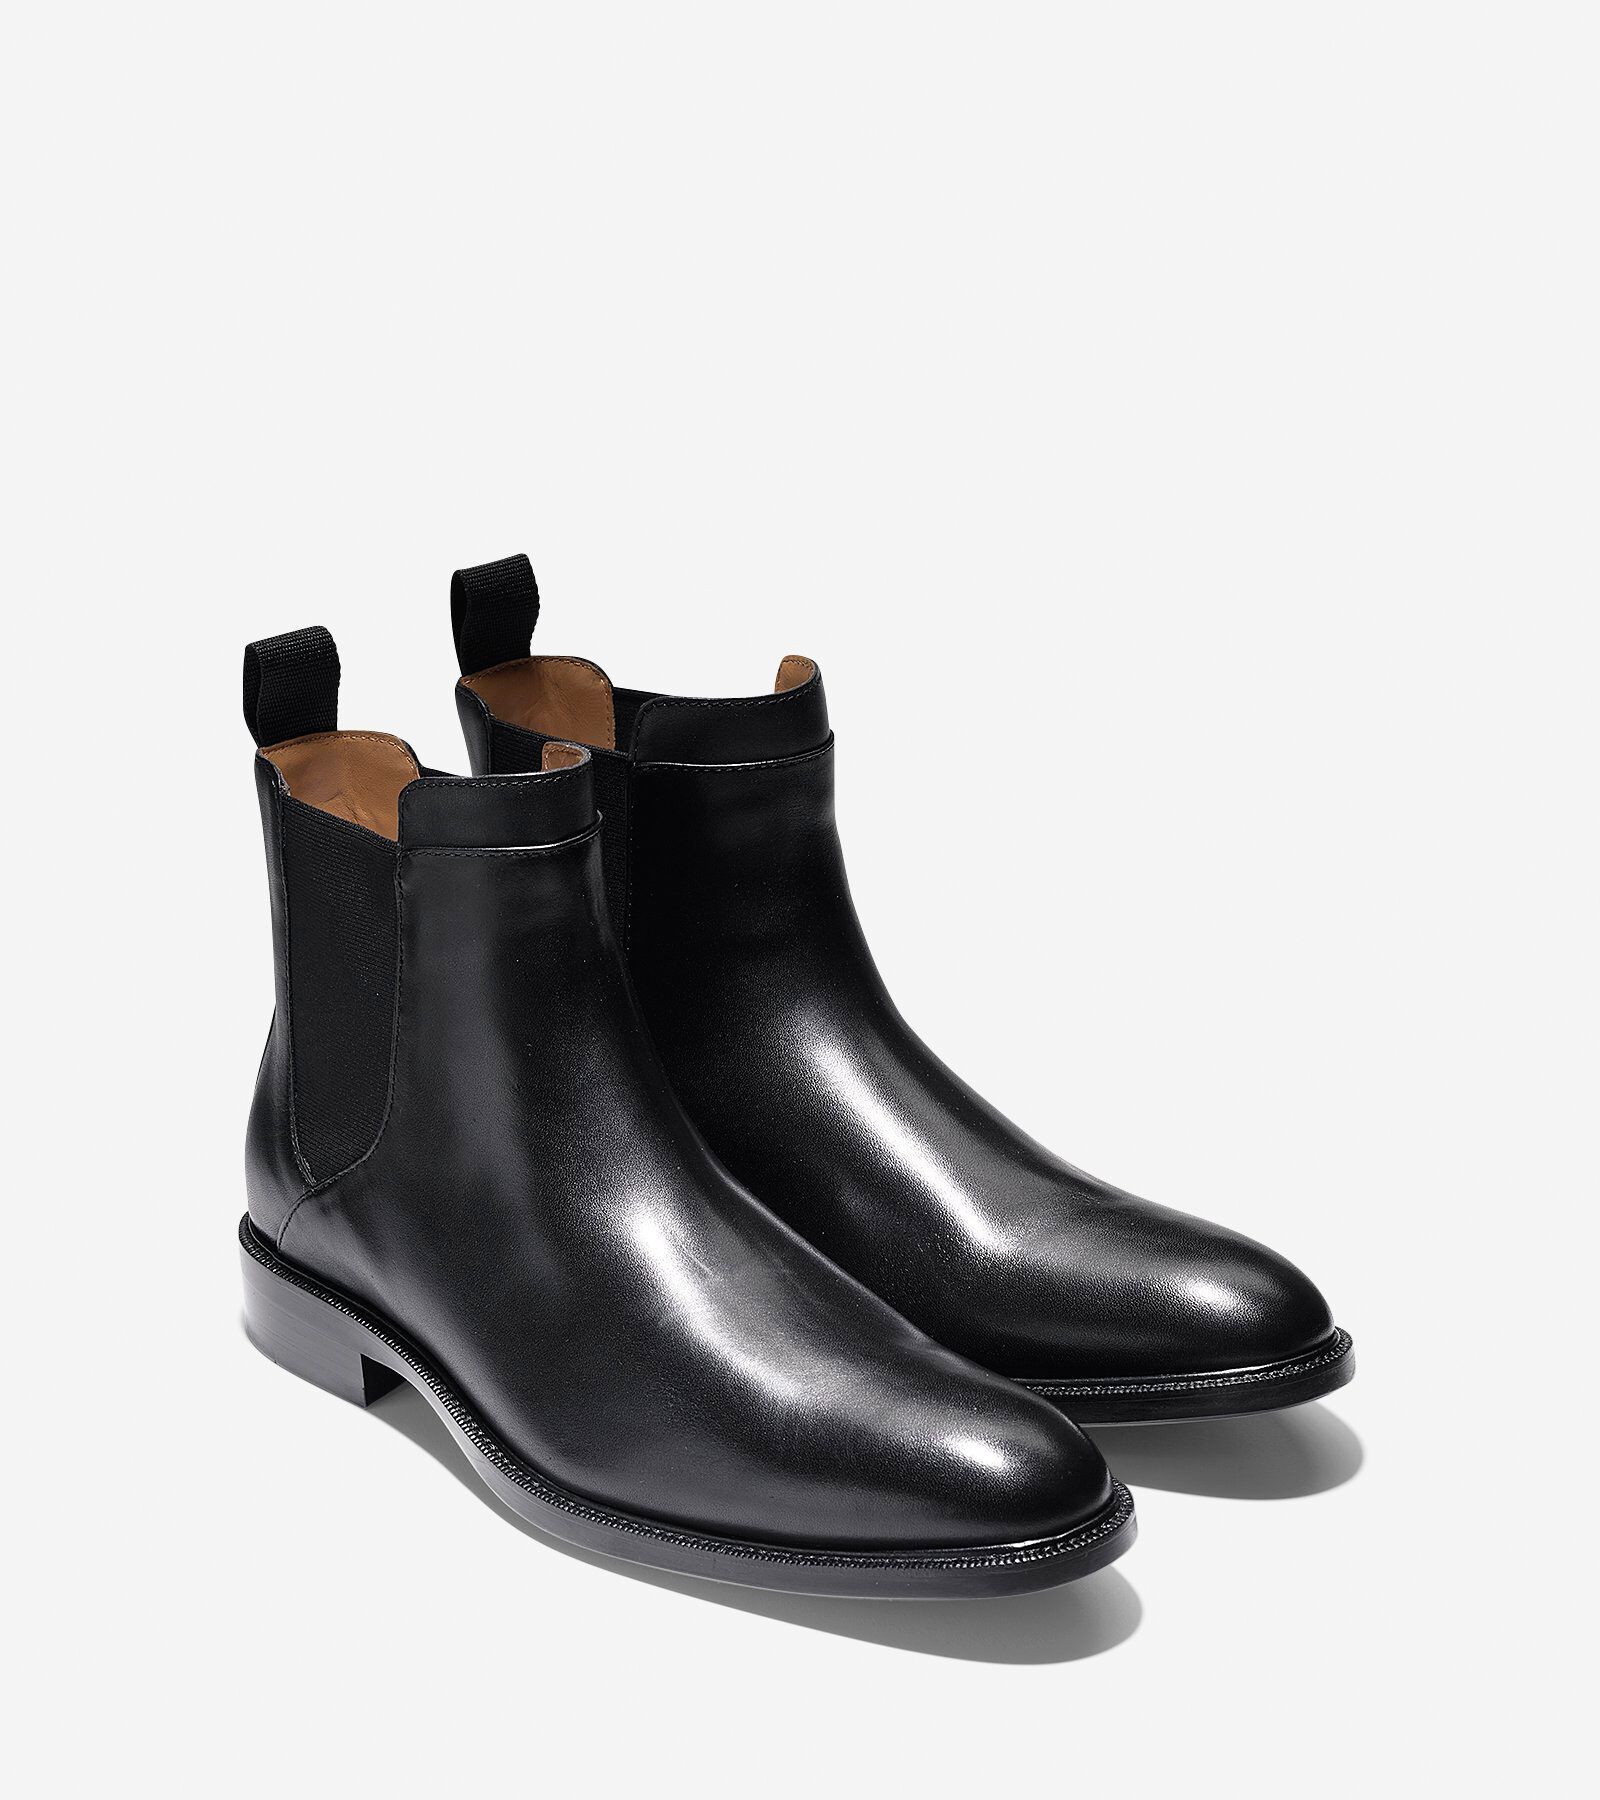 Cole Haan Leather Ankle Boots low shipping online nf5X9